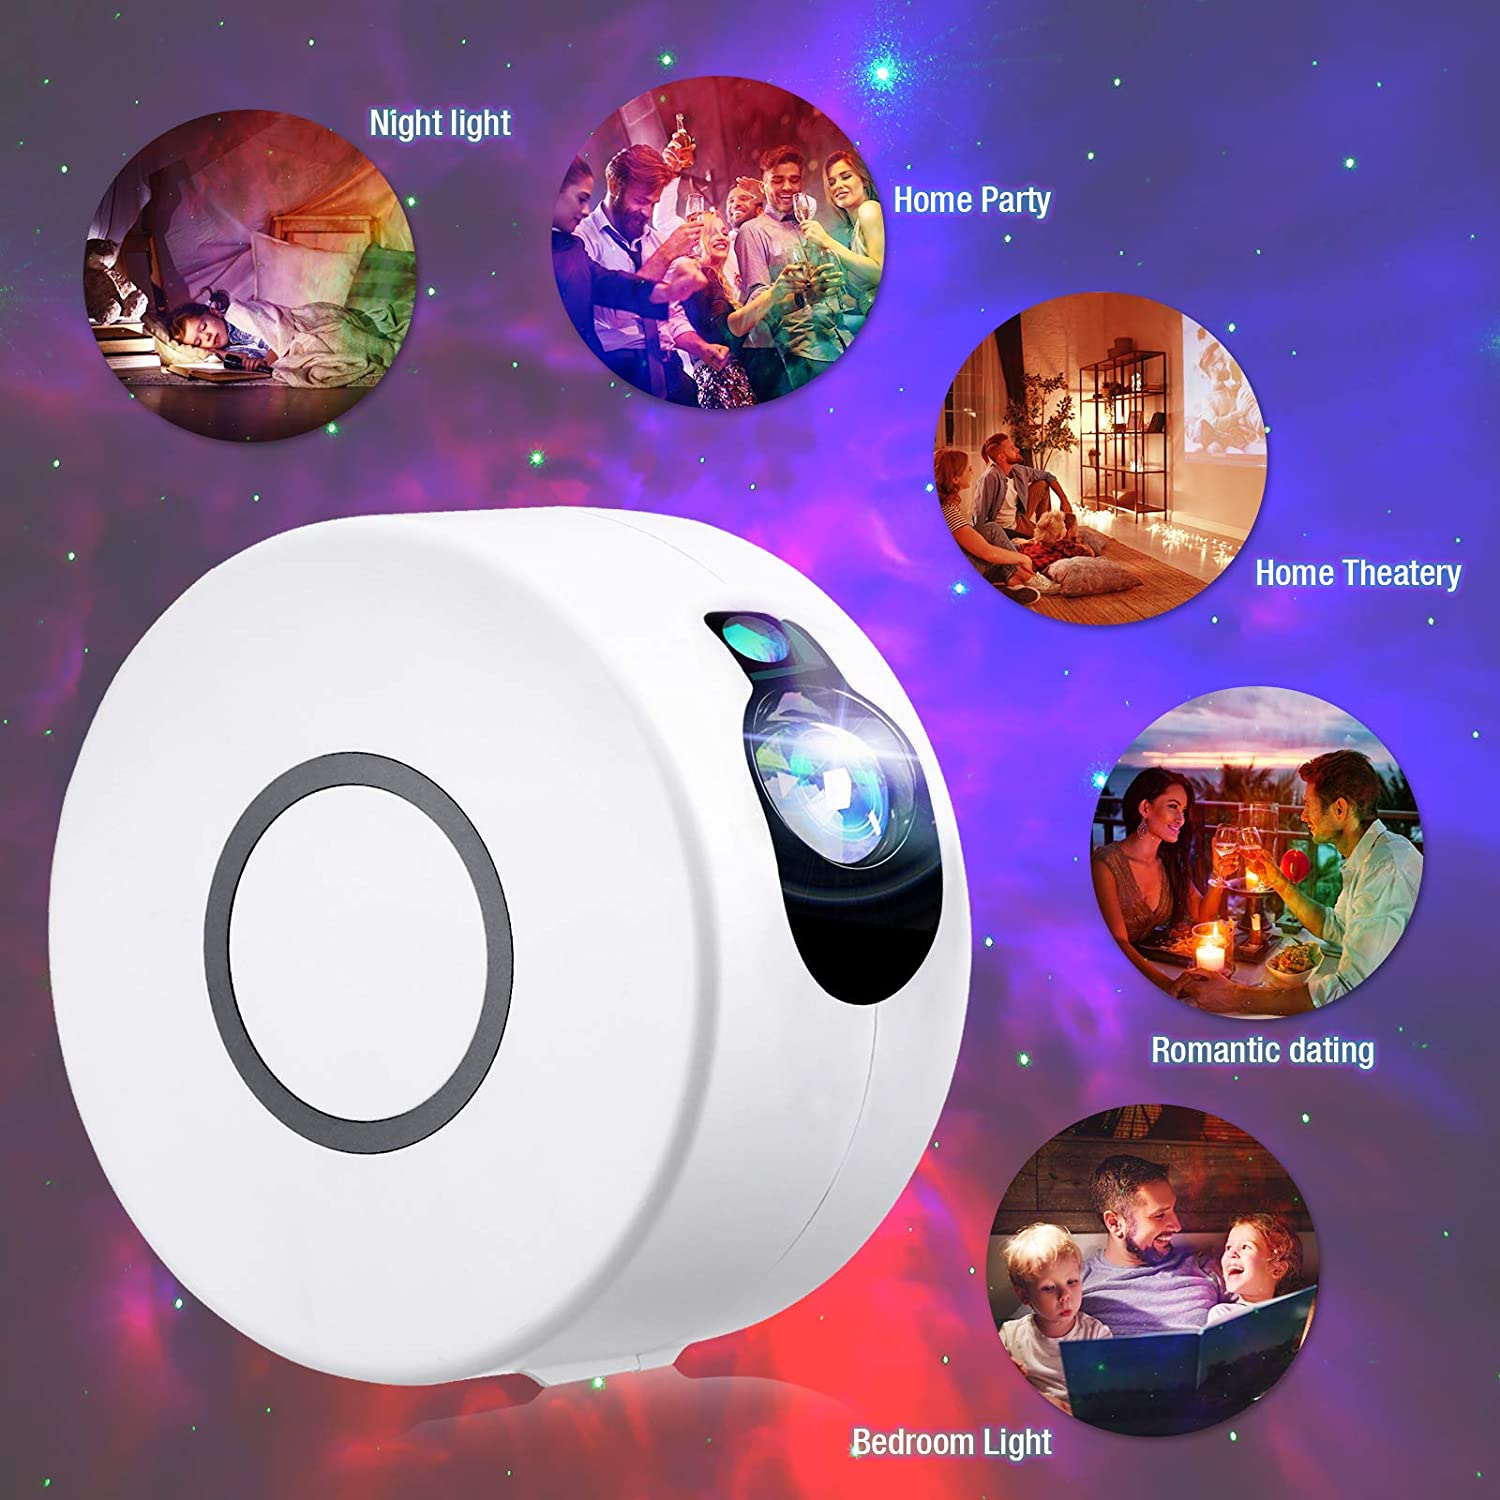 15 Lighting Effects Star Light Night Projector with LED Nebula Cloud Star Projector White Projector for Bedroom//Ceiling//Room Decor and Mood Ambiance Lighting White